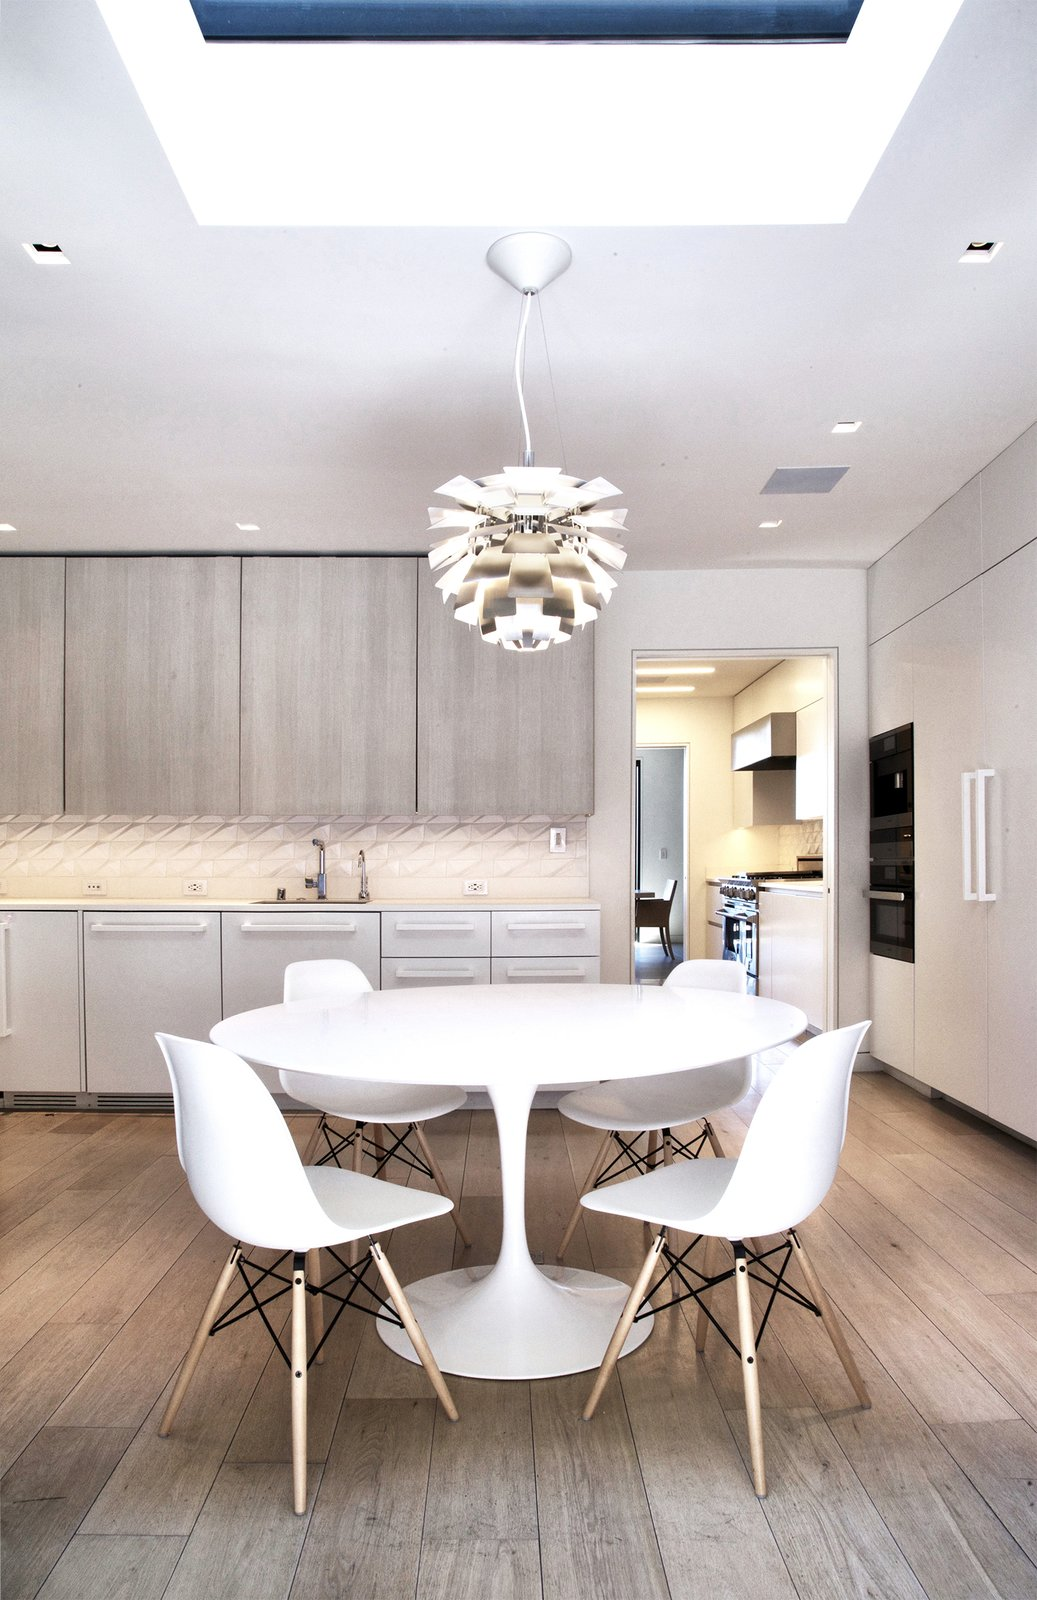 Breakfast Room - Saarinen Tulip Table, Eames side chairs, Miele appliances, Louis Poulsen PH Stainless Steel Artichoke light  Lyon Residence by Diego Pacheco Design Practice